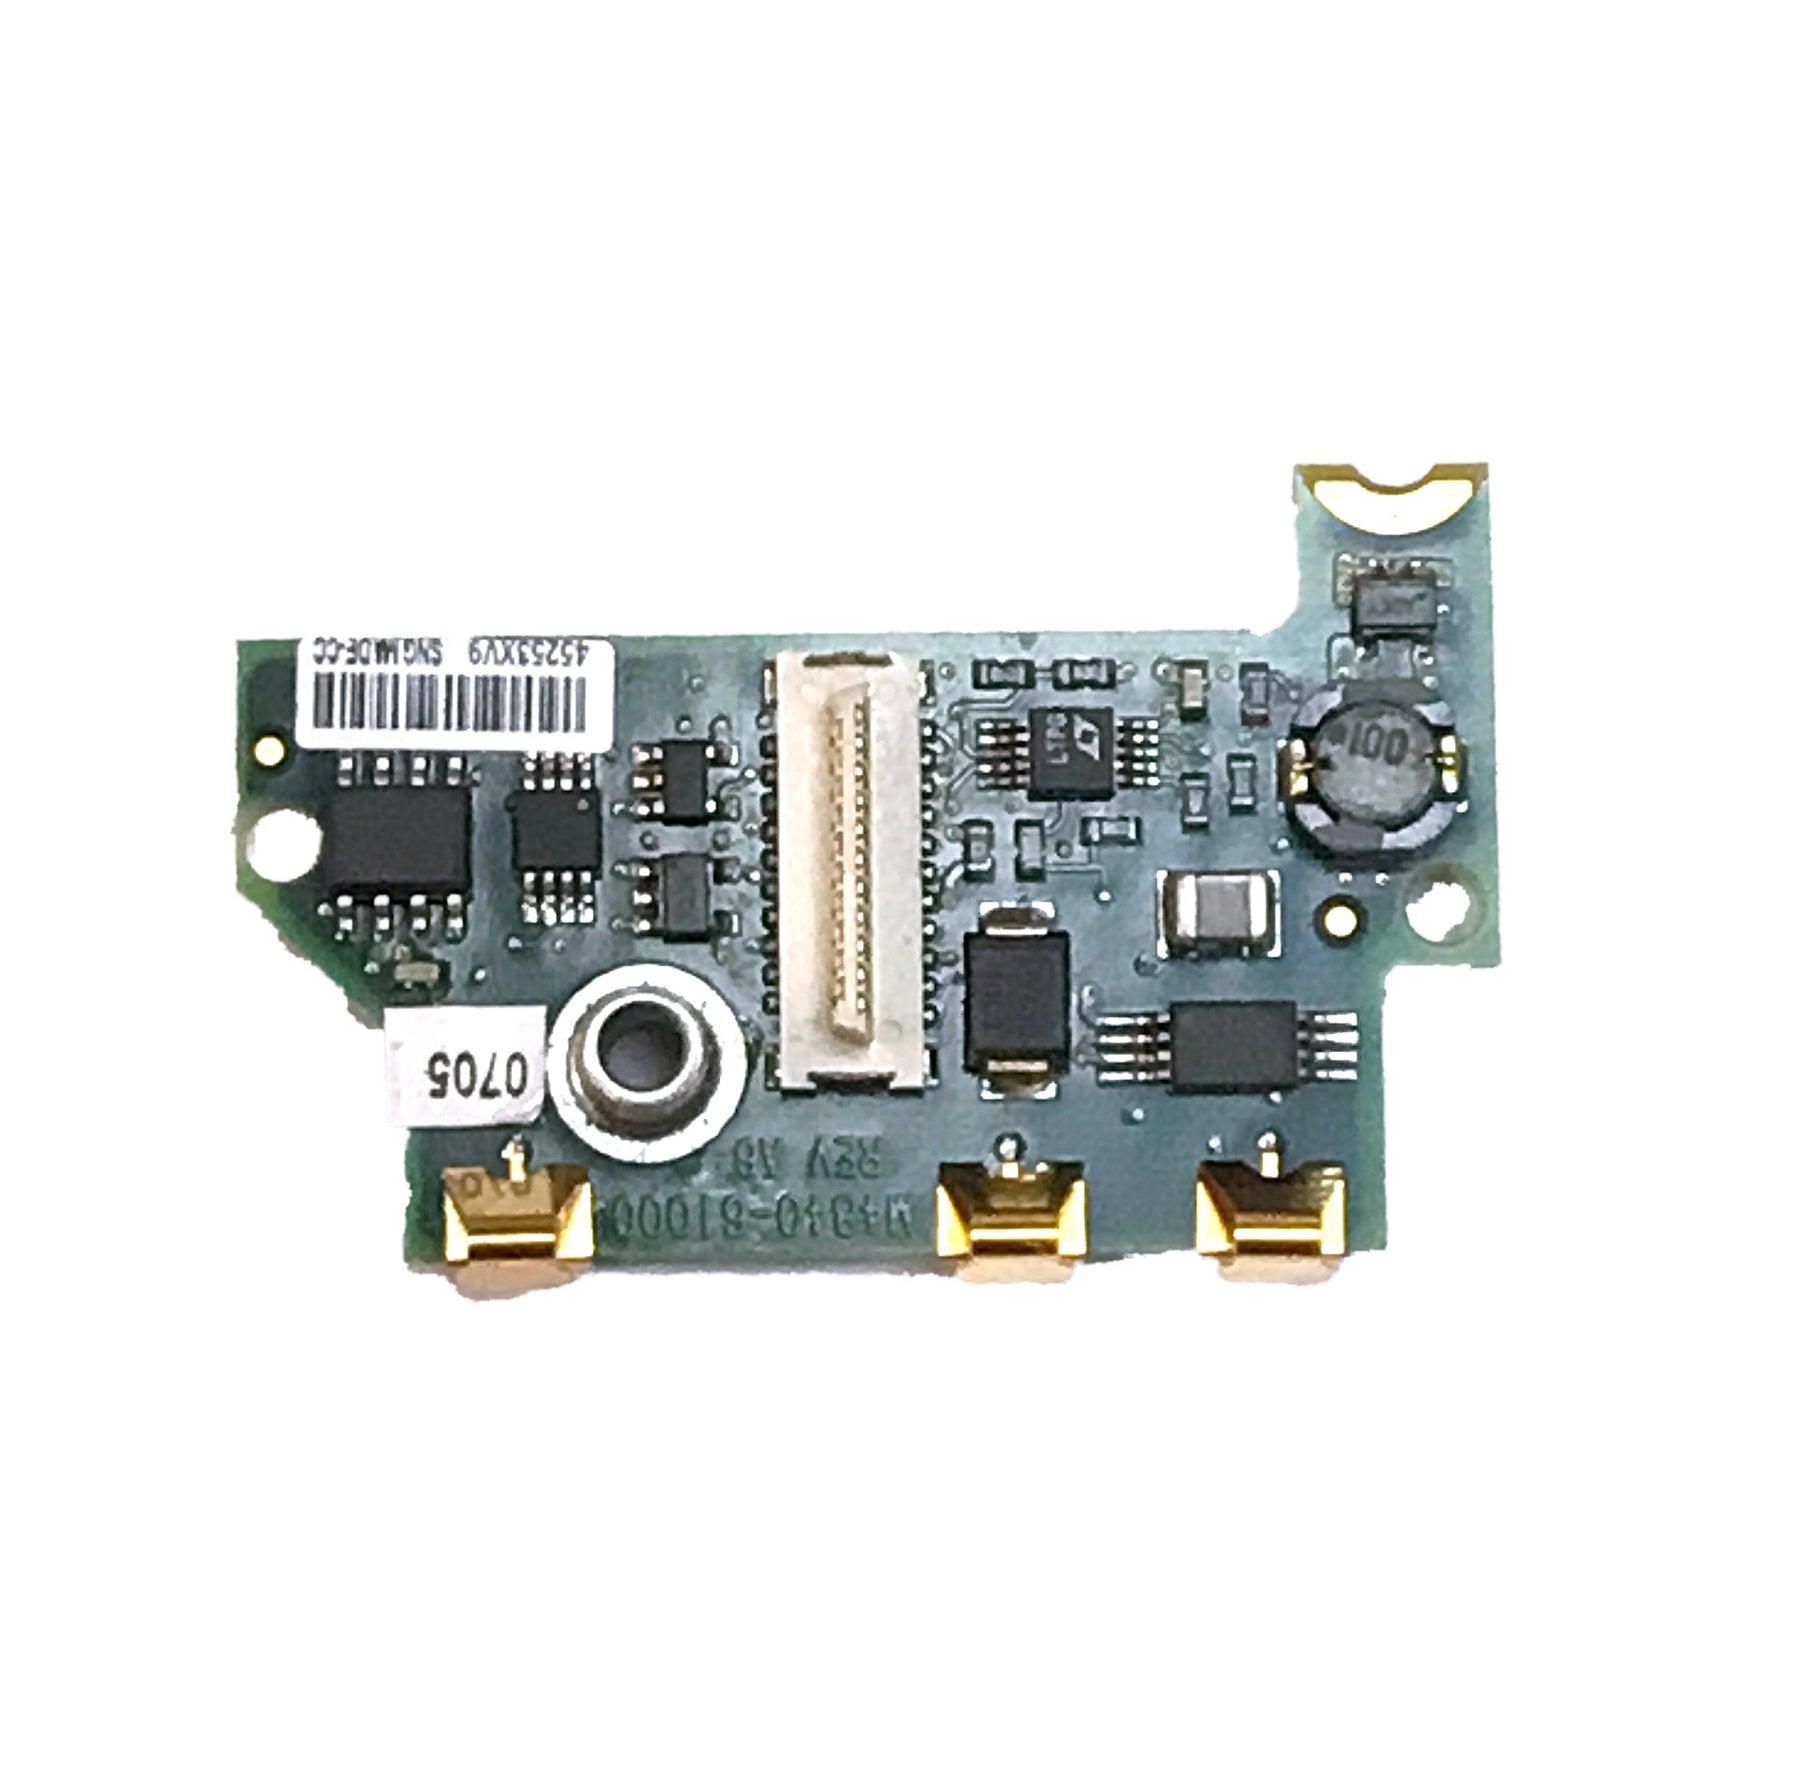 Philips IntelliVue M2601B/M4841A TRx+ Telemetry Transmitter Power Supply Circuit Board (S01, S02, S03), PCB Assembly